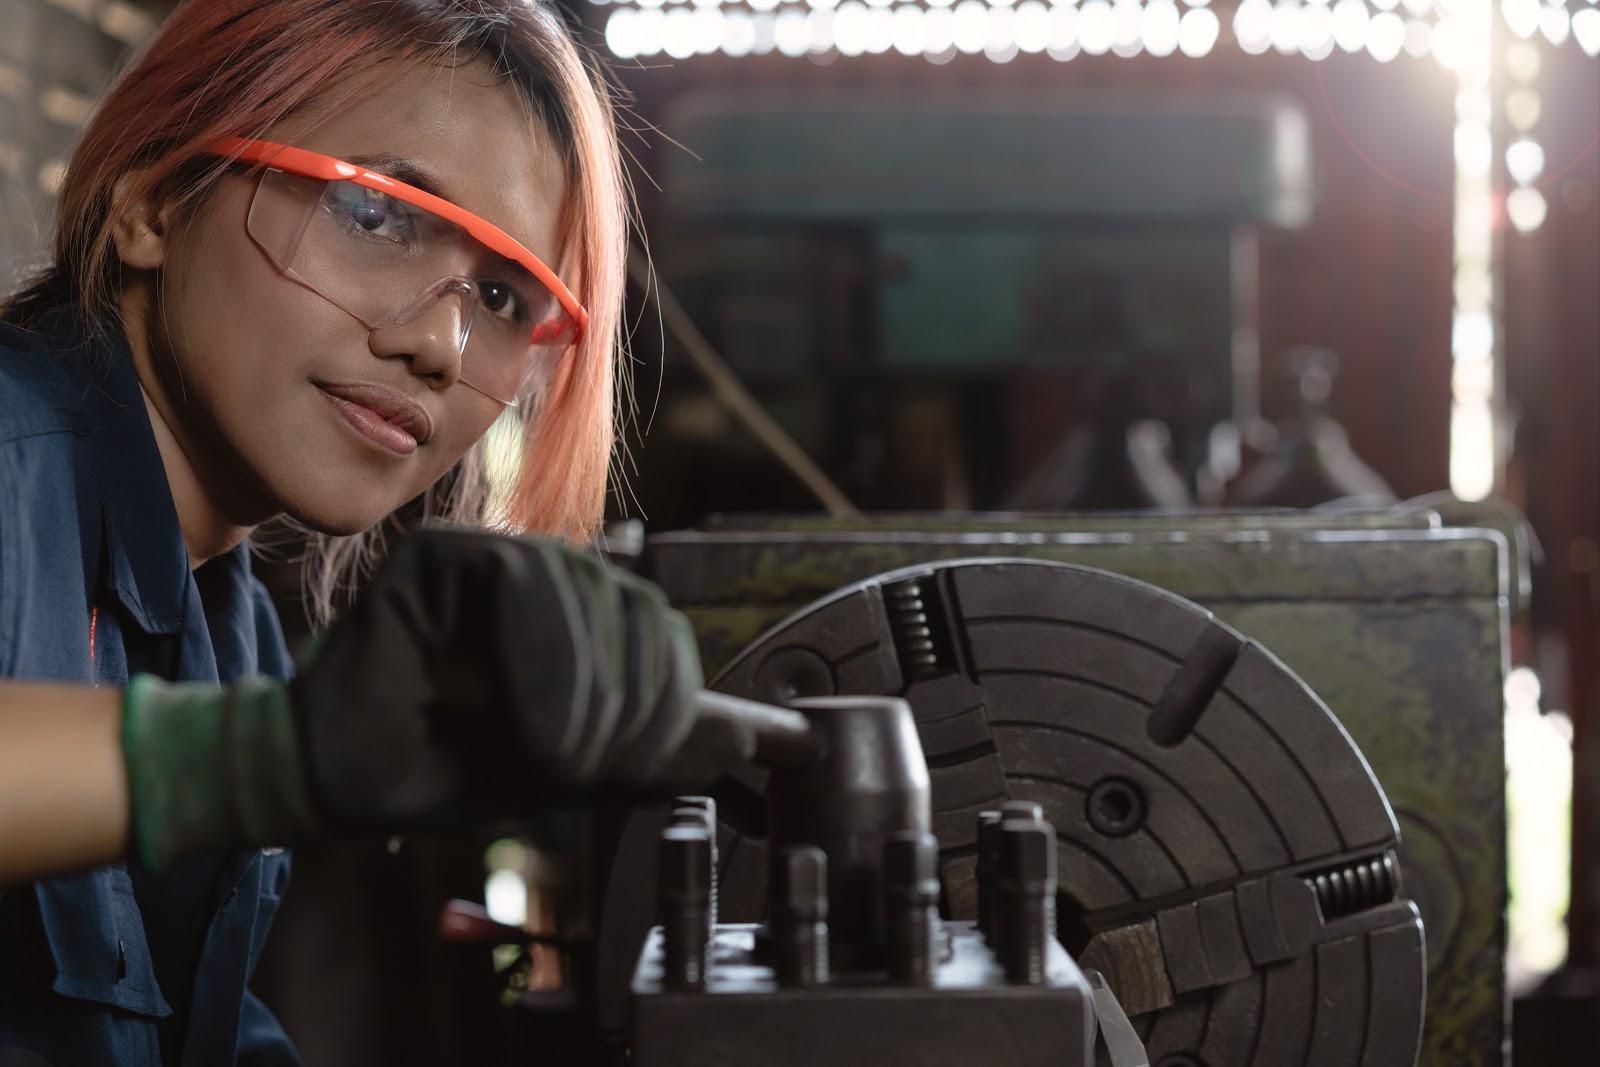 Female engineer wearing safety equipment while working